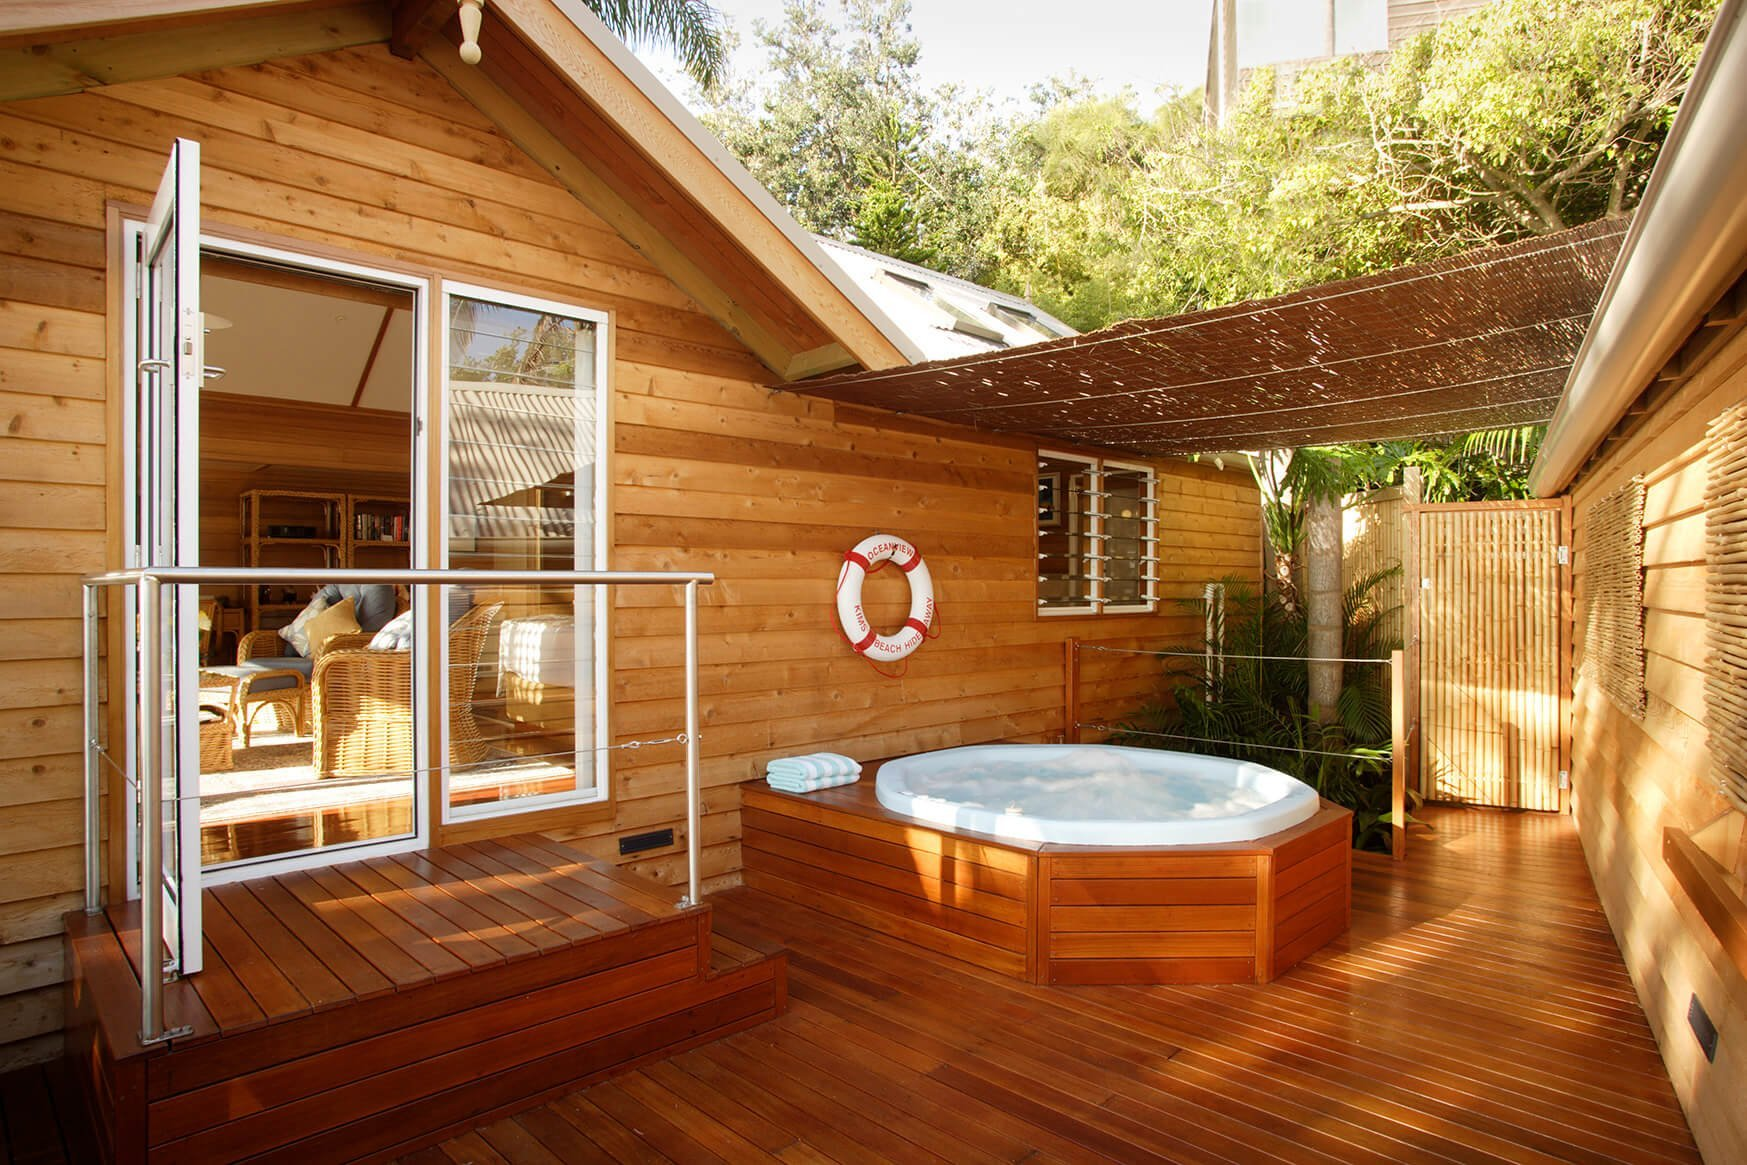 Terrace View Bungalow Jacuzzi and Decking